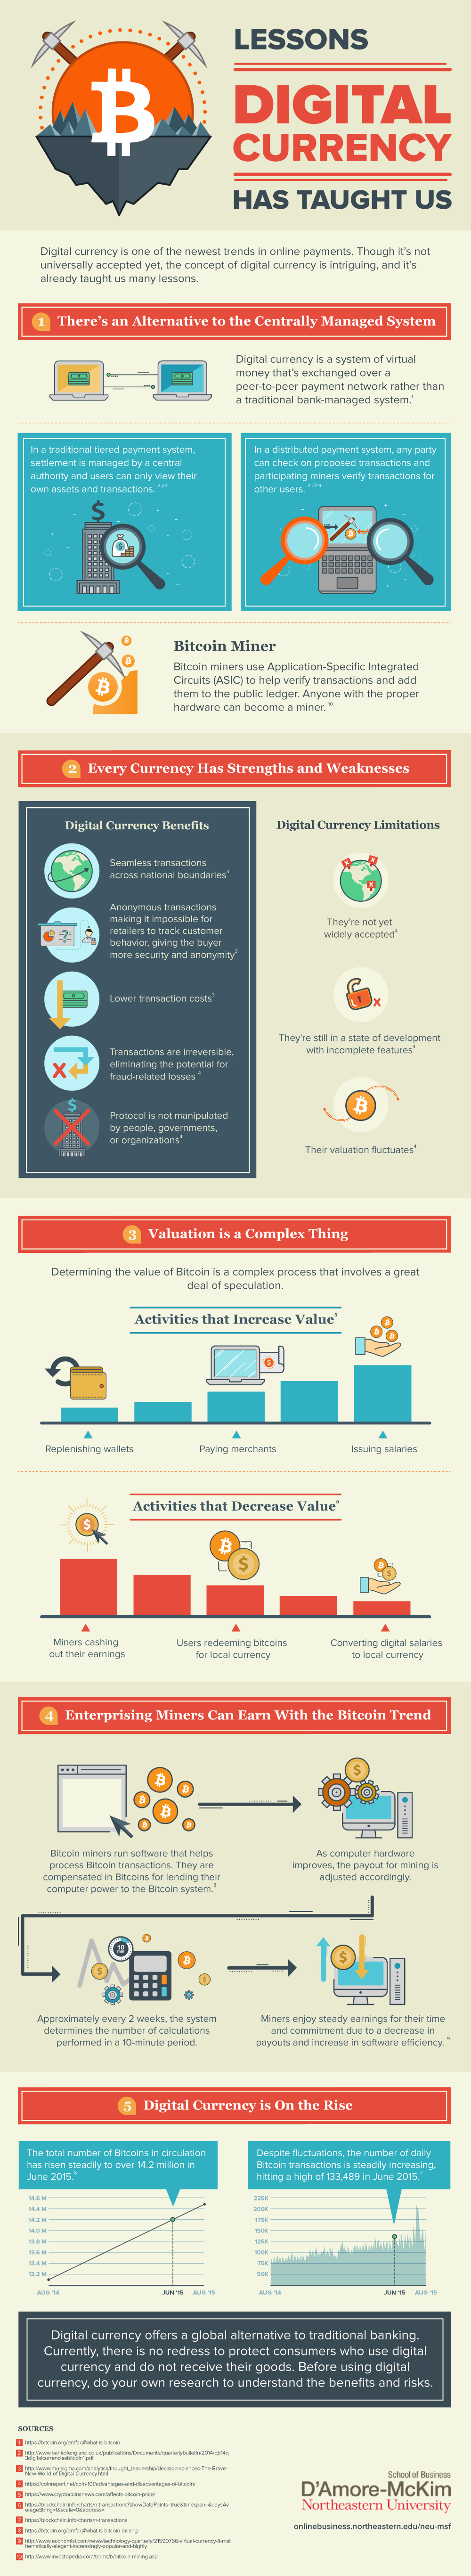 Lessons Digital Currency Has Taught Us Infographic